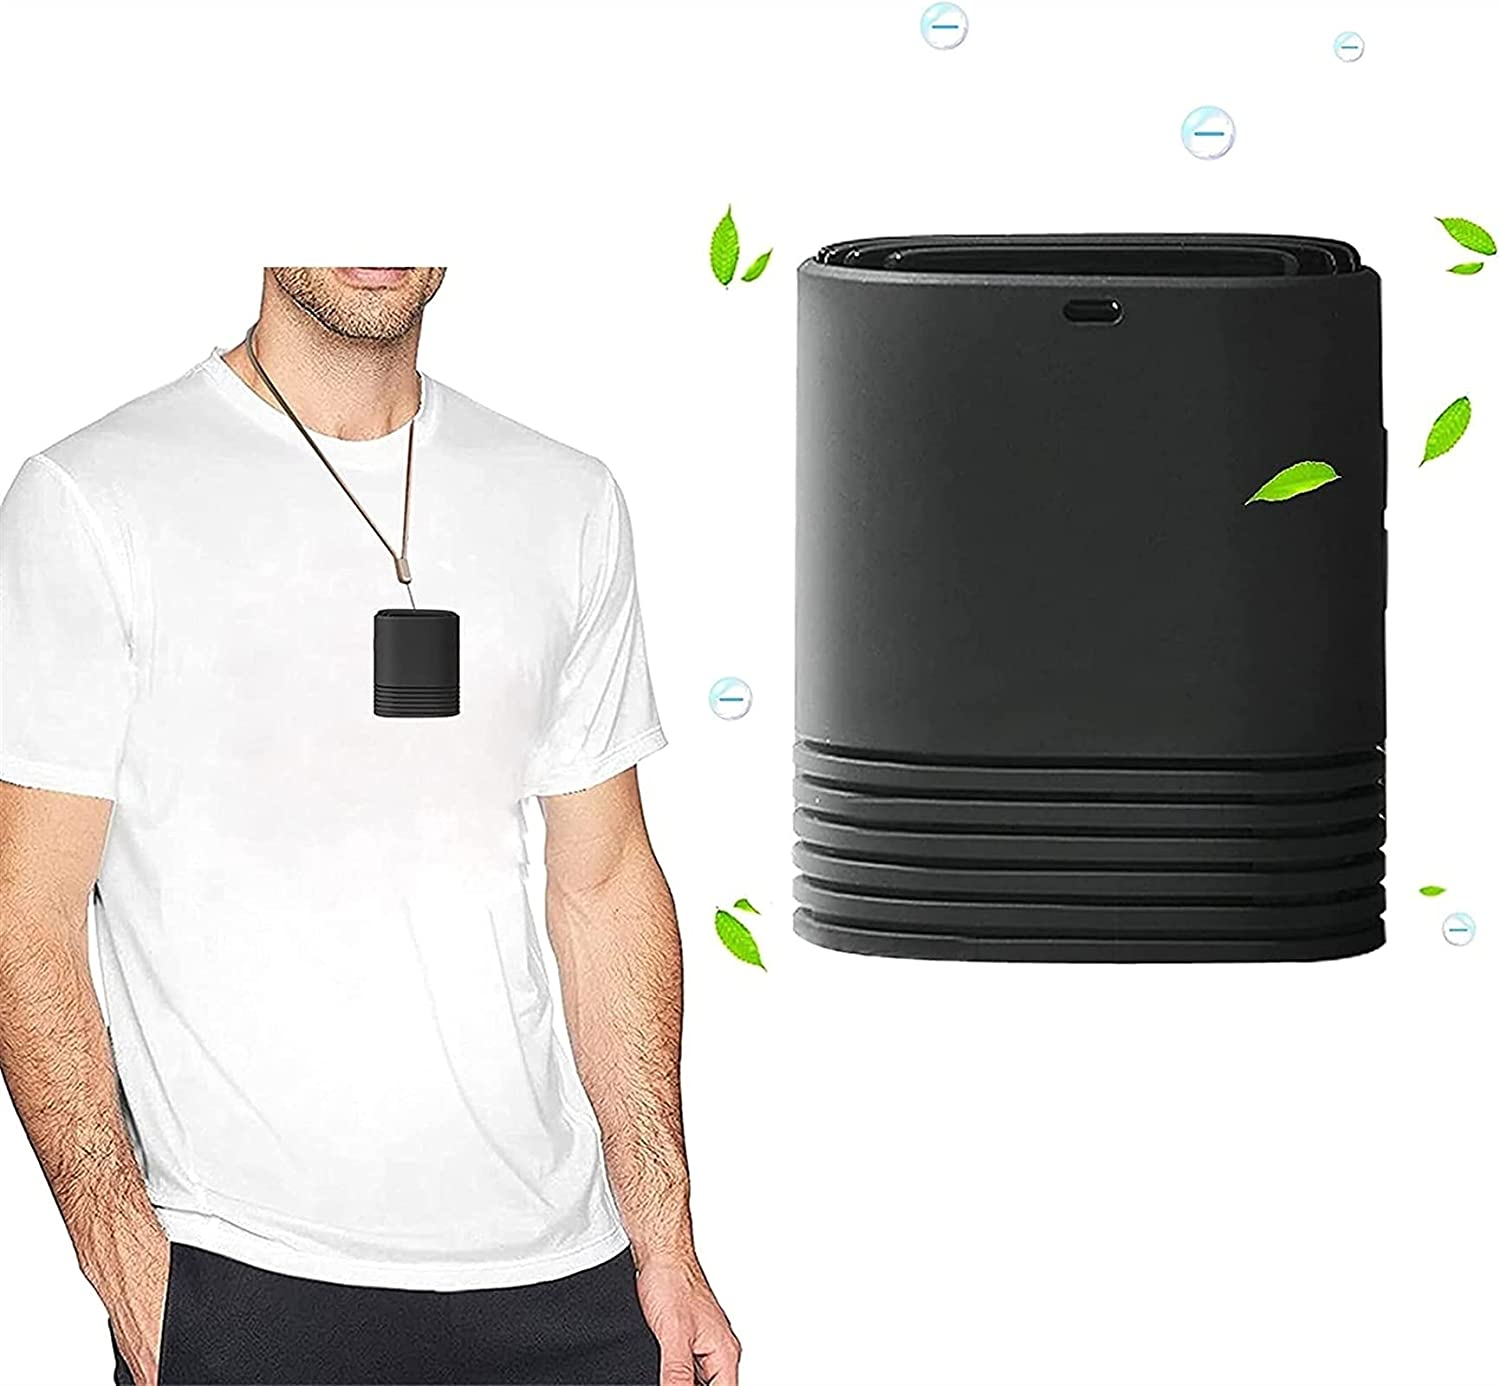 Personal Year-end gift Air Purifier Negative Generator Around C The Neck Max 70% OFF USB